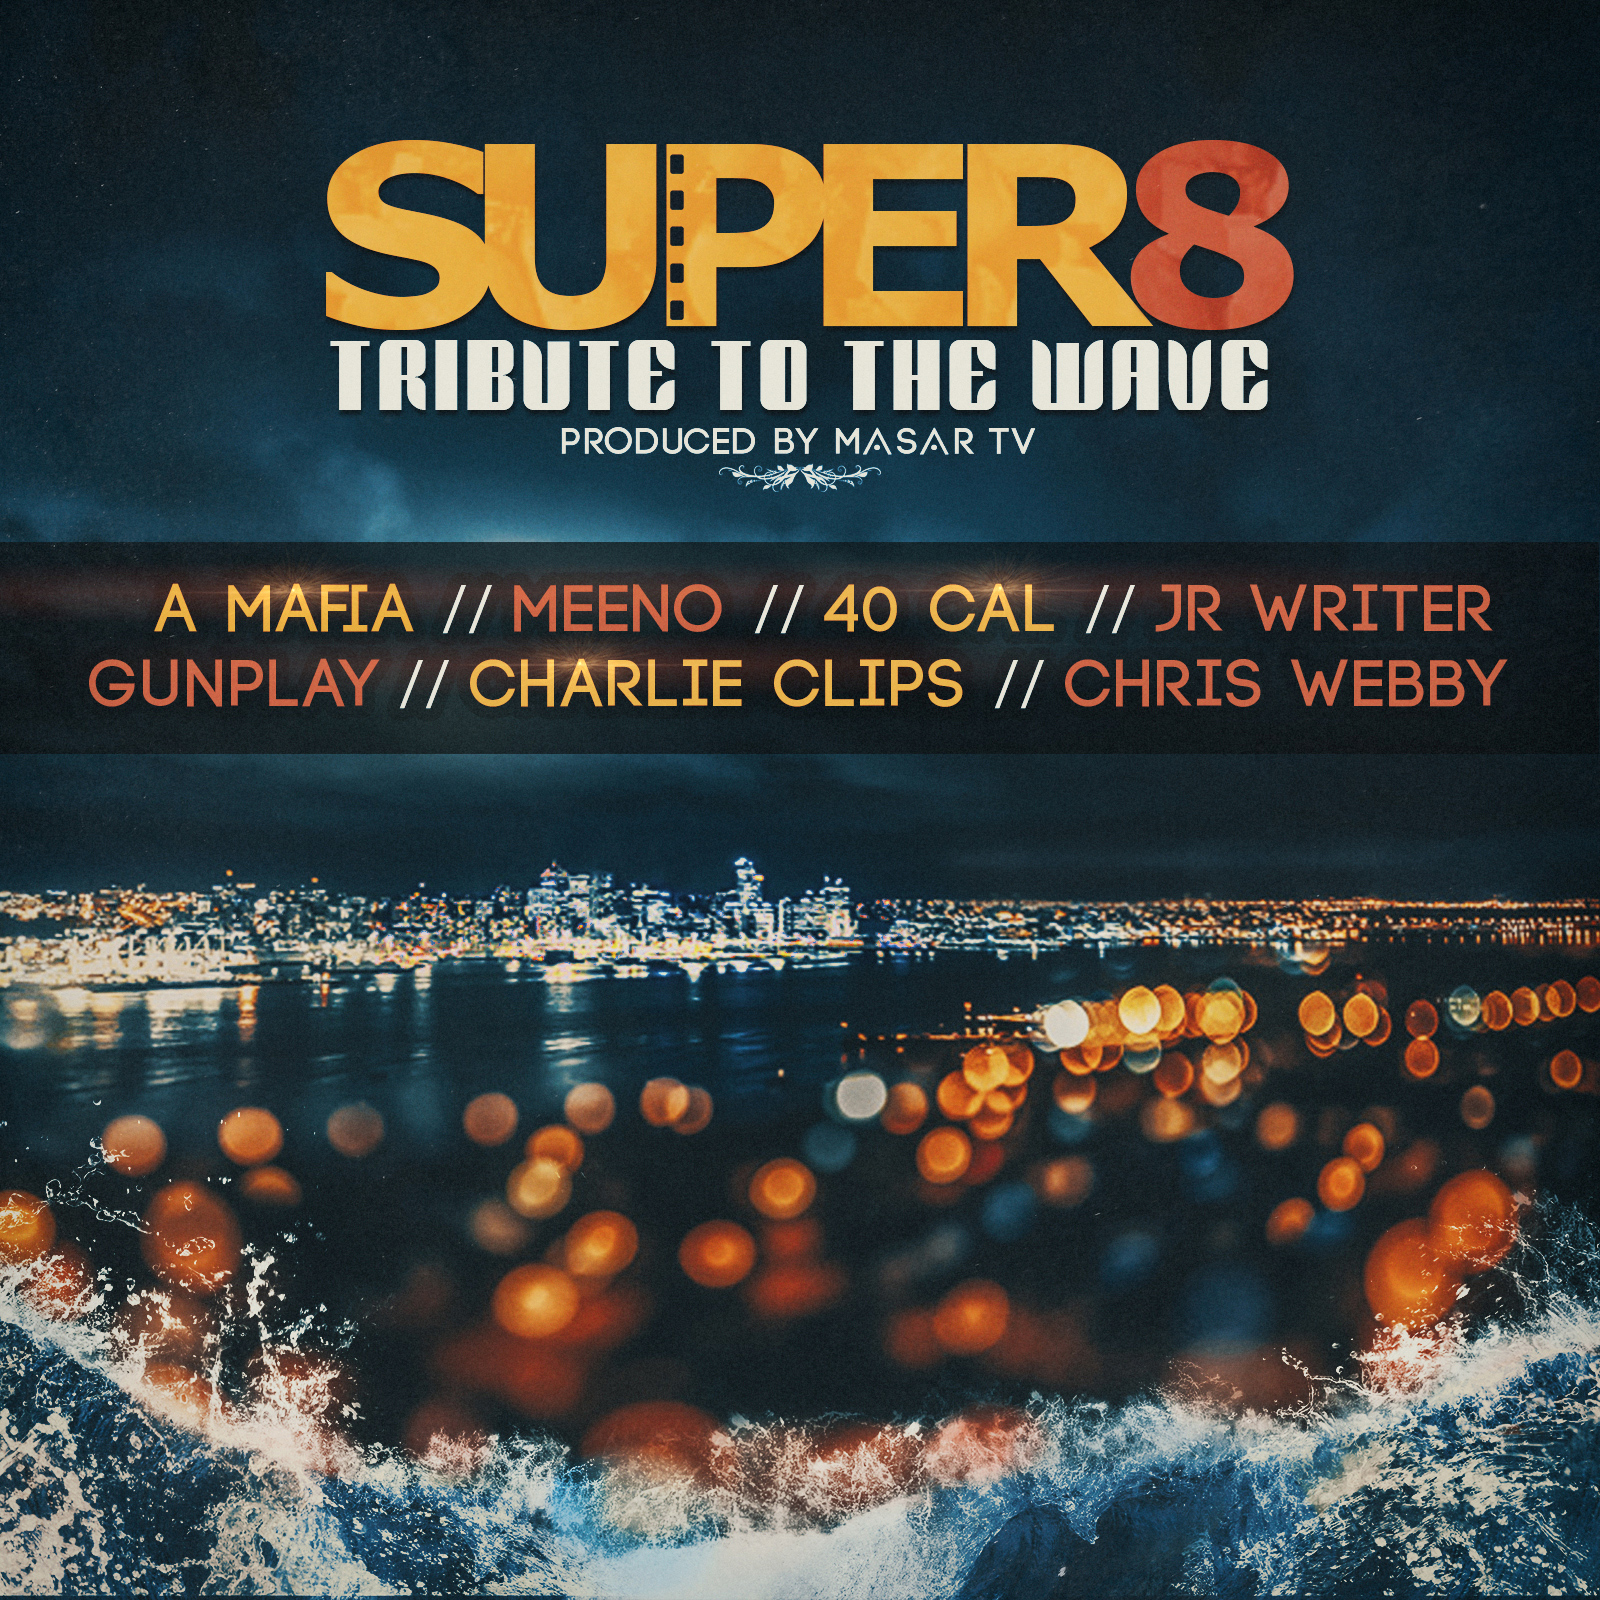 Masar presents Super 8 Tribute To The Wave